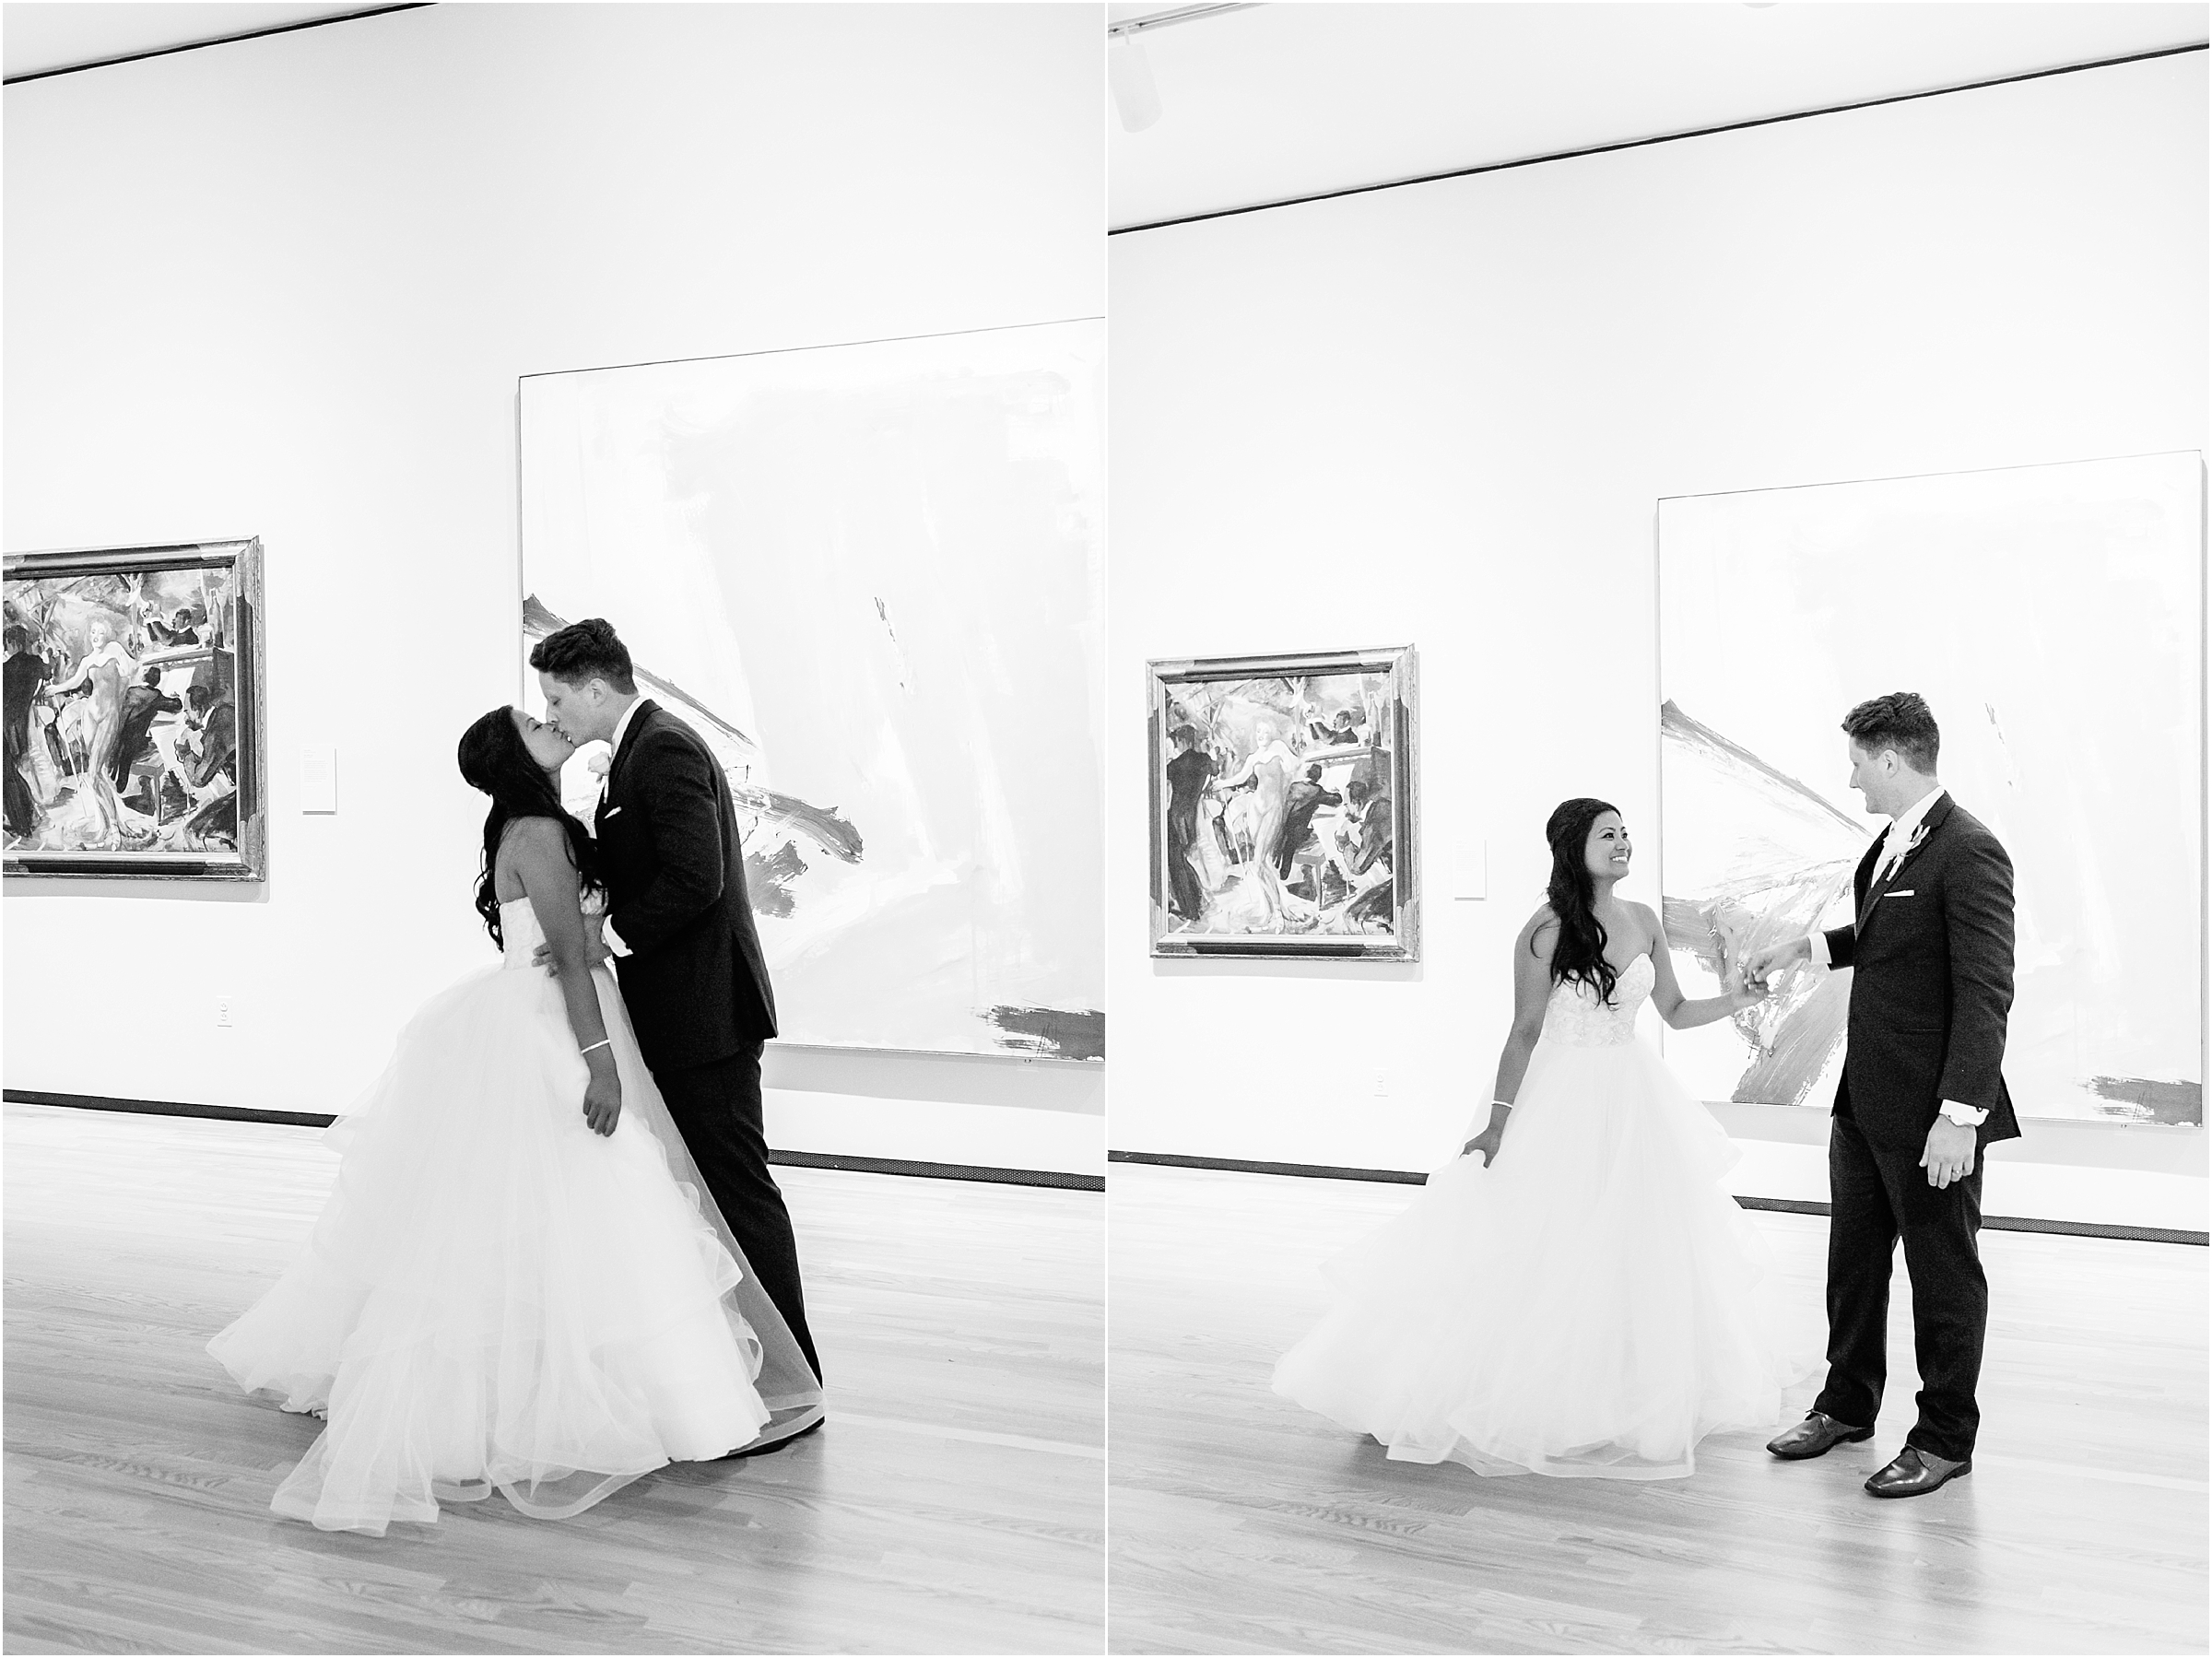 Chrysler Museum of Art elegant wedding portraits in the art gallery